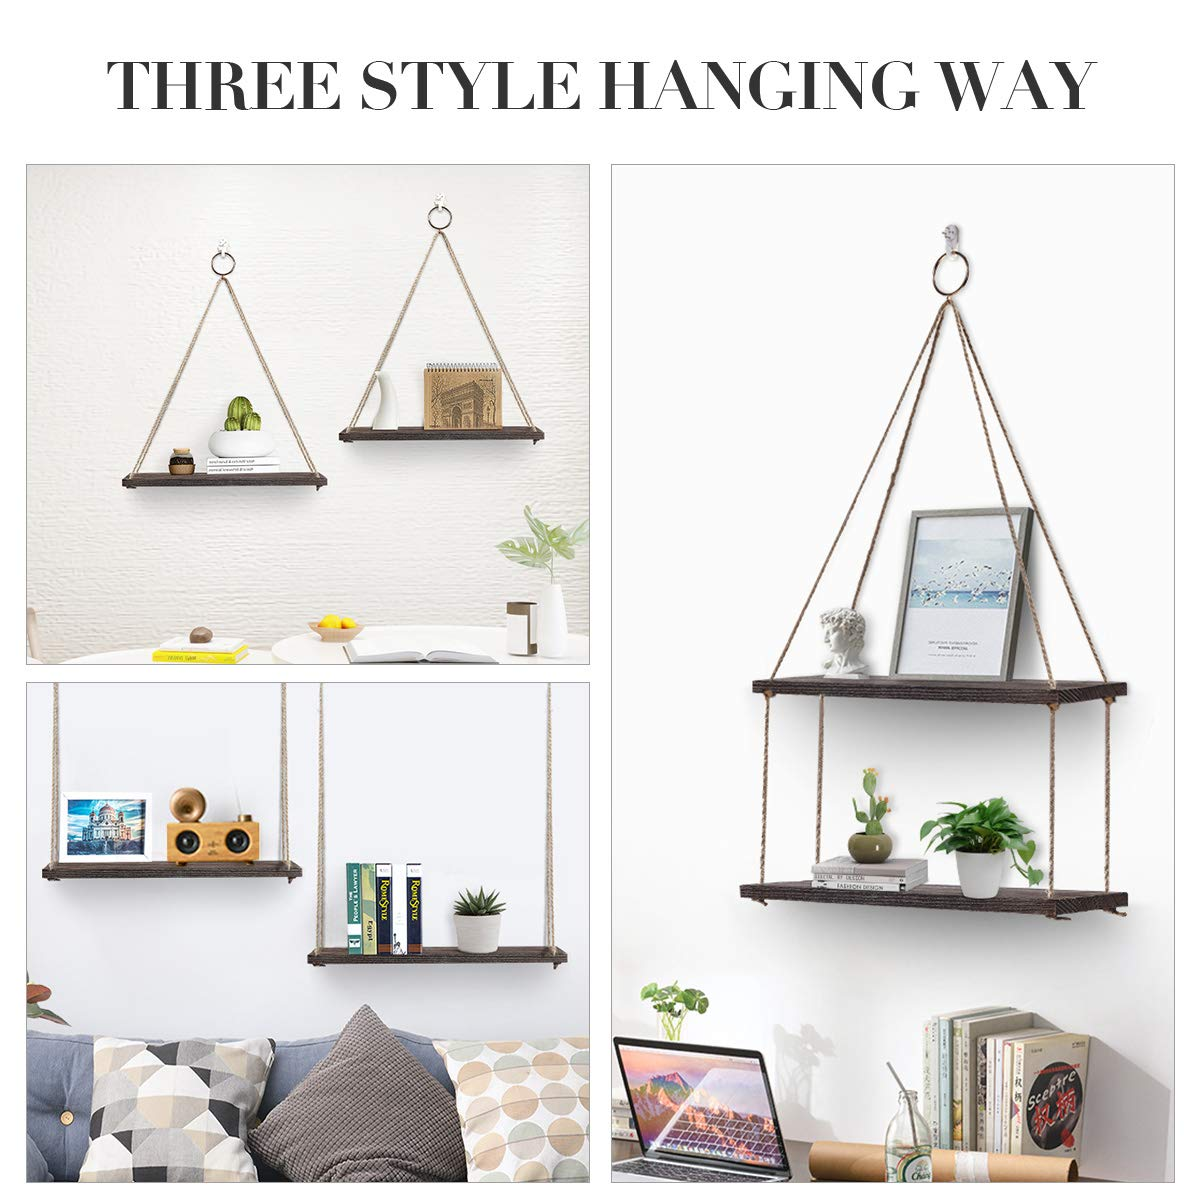 AGSIVO Floating Shelves with String,Hanging Shelf Wall Mounted Jute Rope,Rustic Wood Wall Shelves Swing Shelf Picture Ledge Home Storage Organizer Wall Decor for Bedroom Living Room Bathroom Set of 2